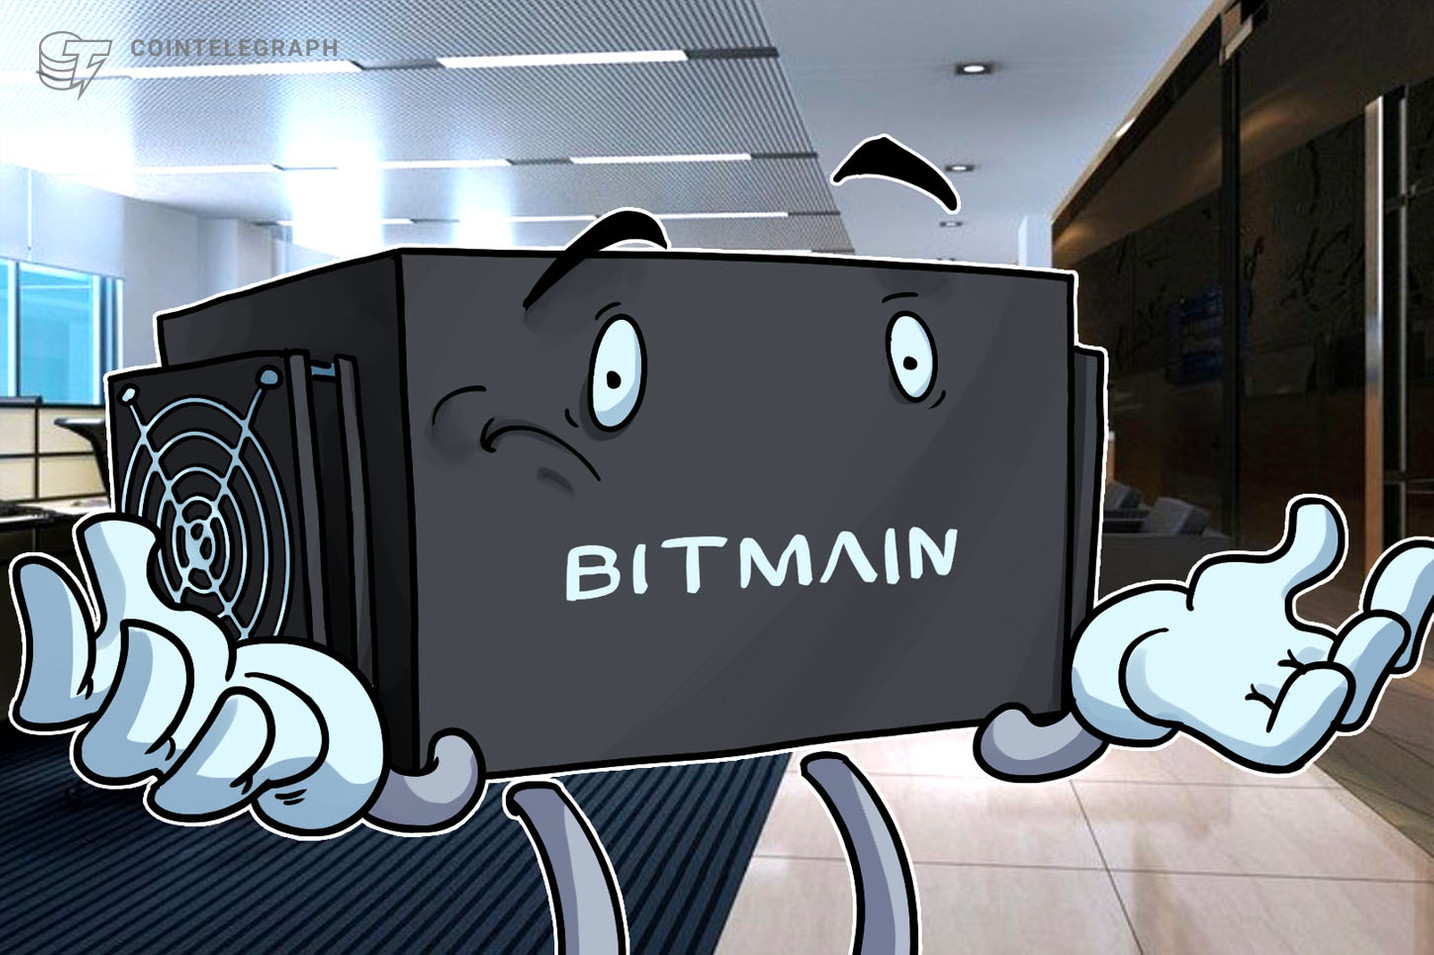 Bitmain's Hashrate Noticeably Dropped in Past 30 Days